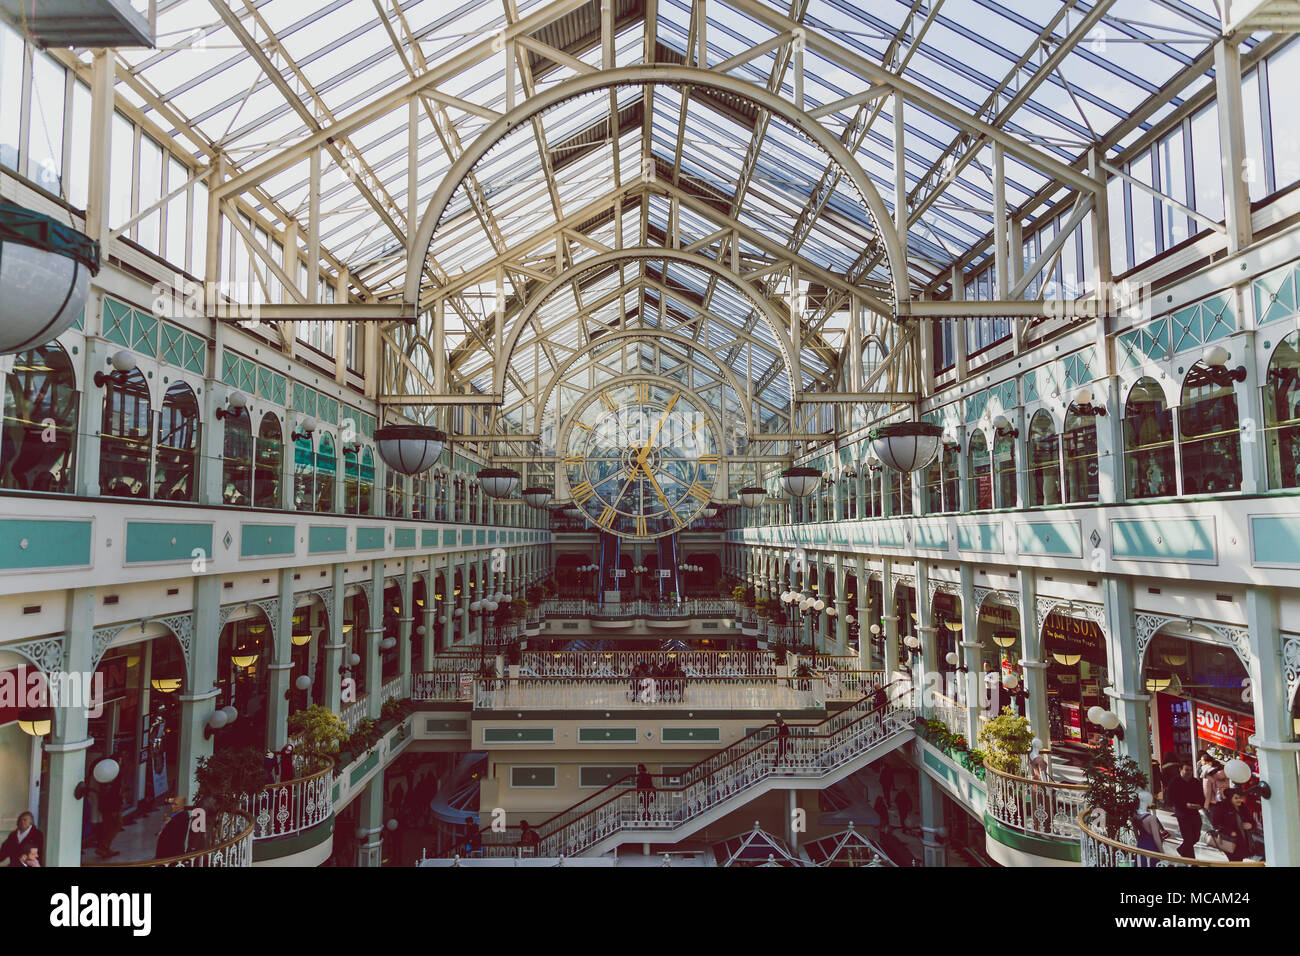 DUBLIN, IRELAND - April 14th, 2018: wide-angle view of the interior of Stephen's Green shopping centre in Dublin city centre - Stock Image